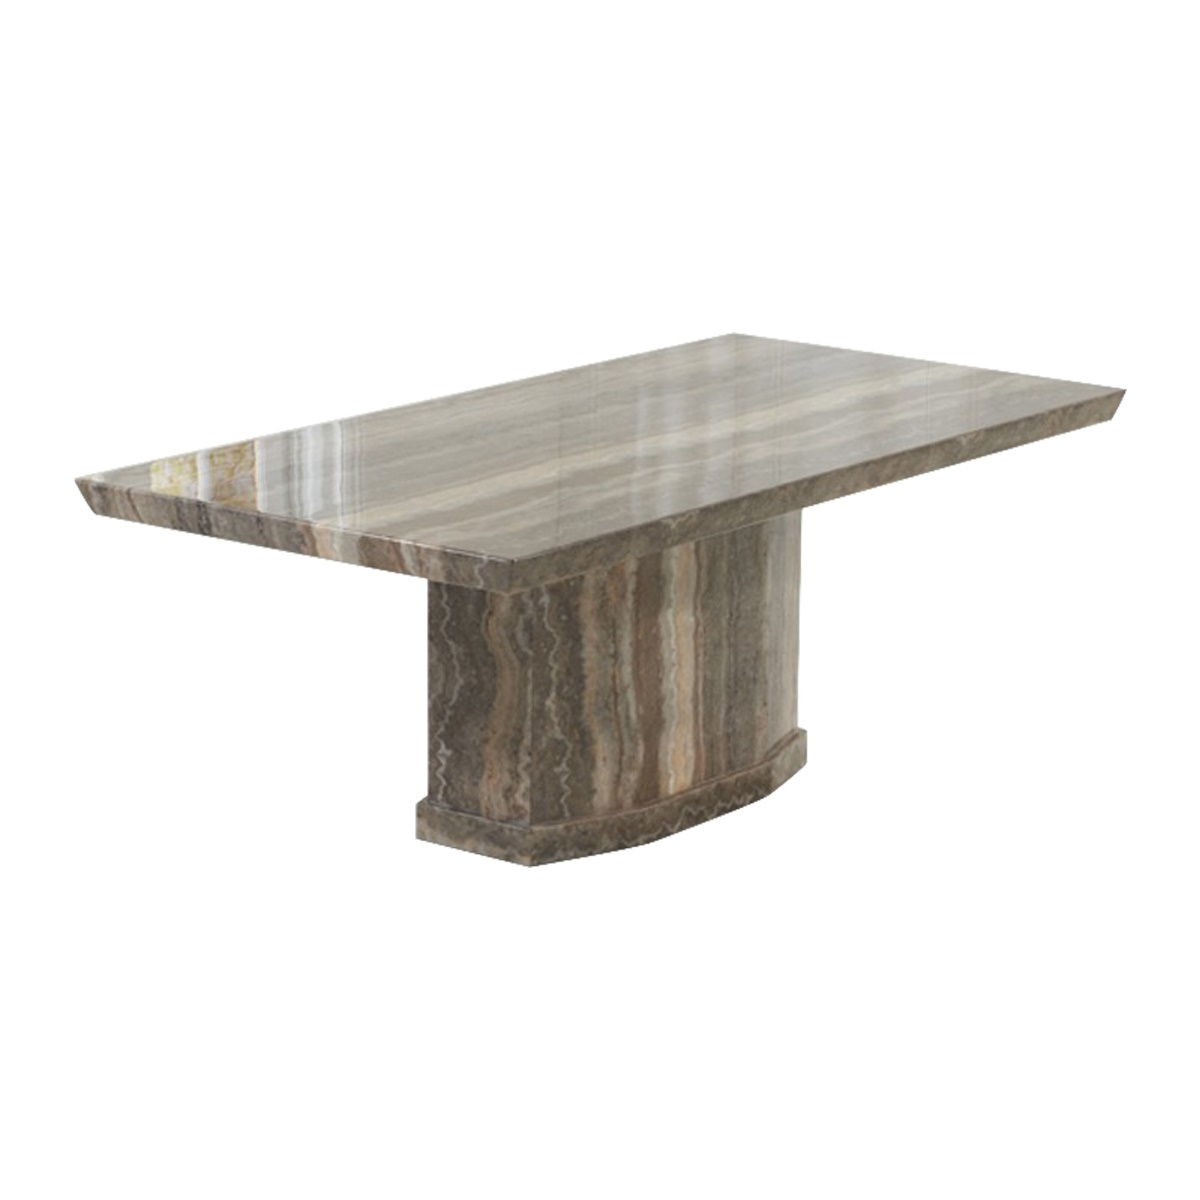 Rimini Brown Marble Dining Table 6-8 Seater